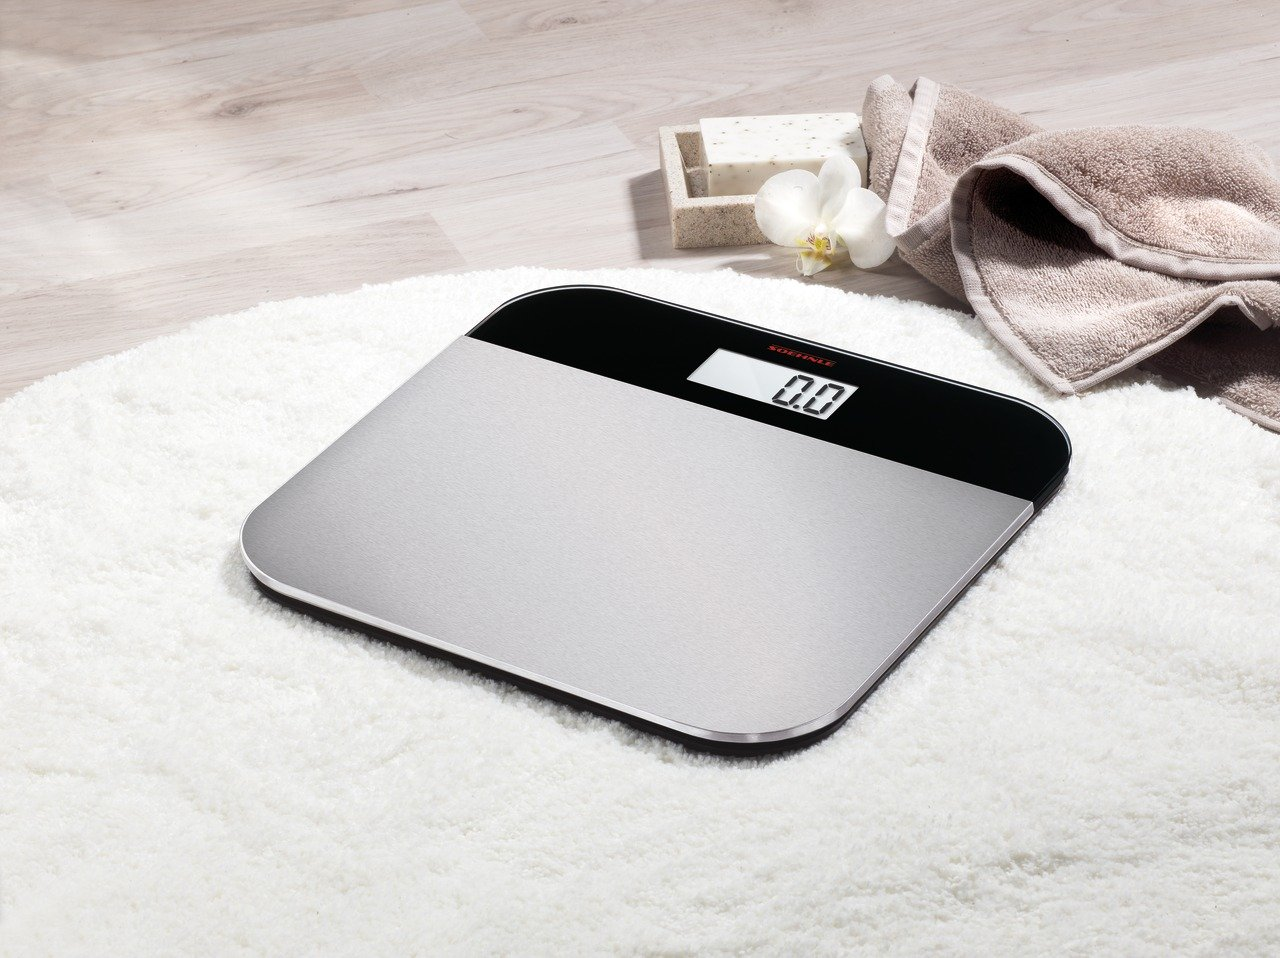 Soehnle Elegance Steel Electronic Personal Bathroom Scale